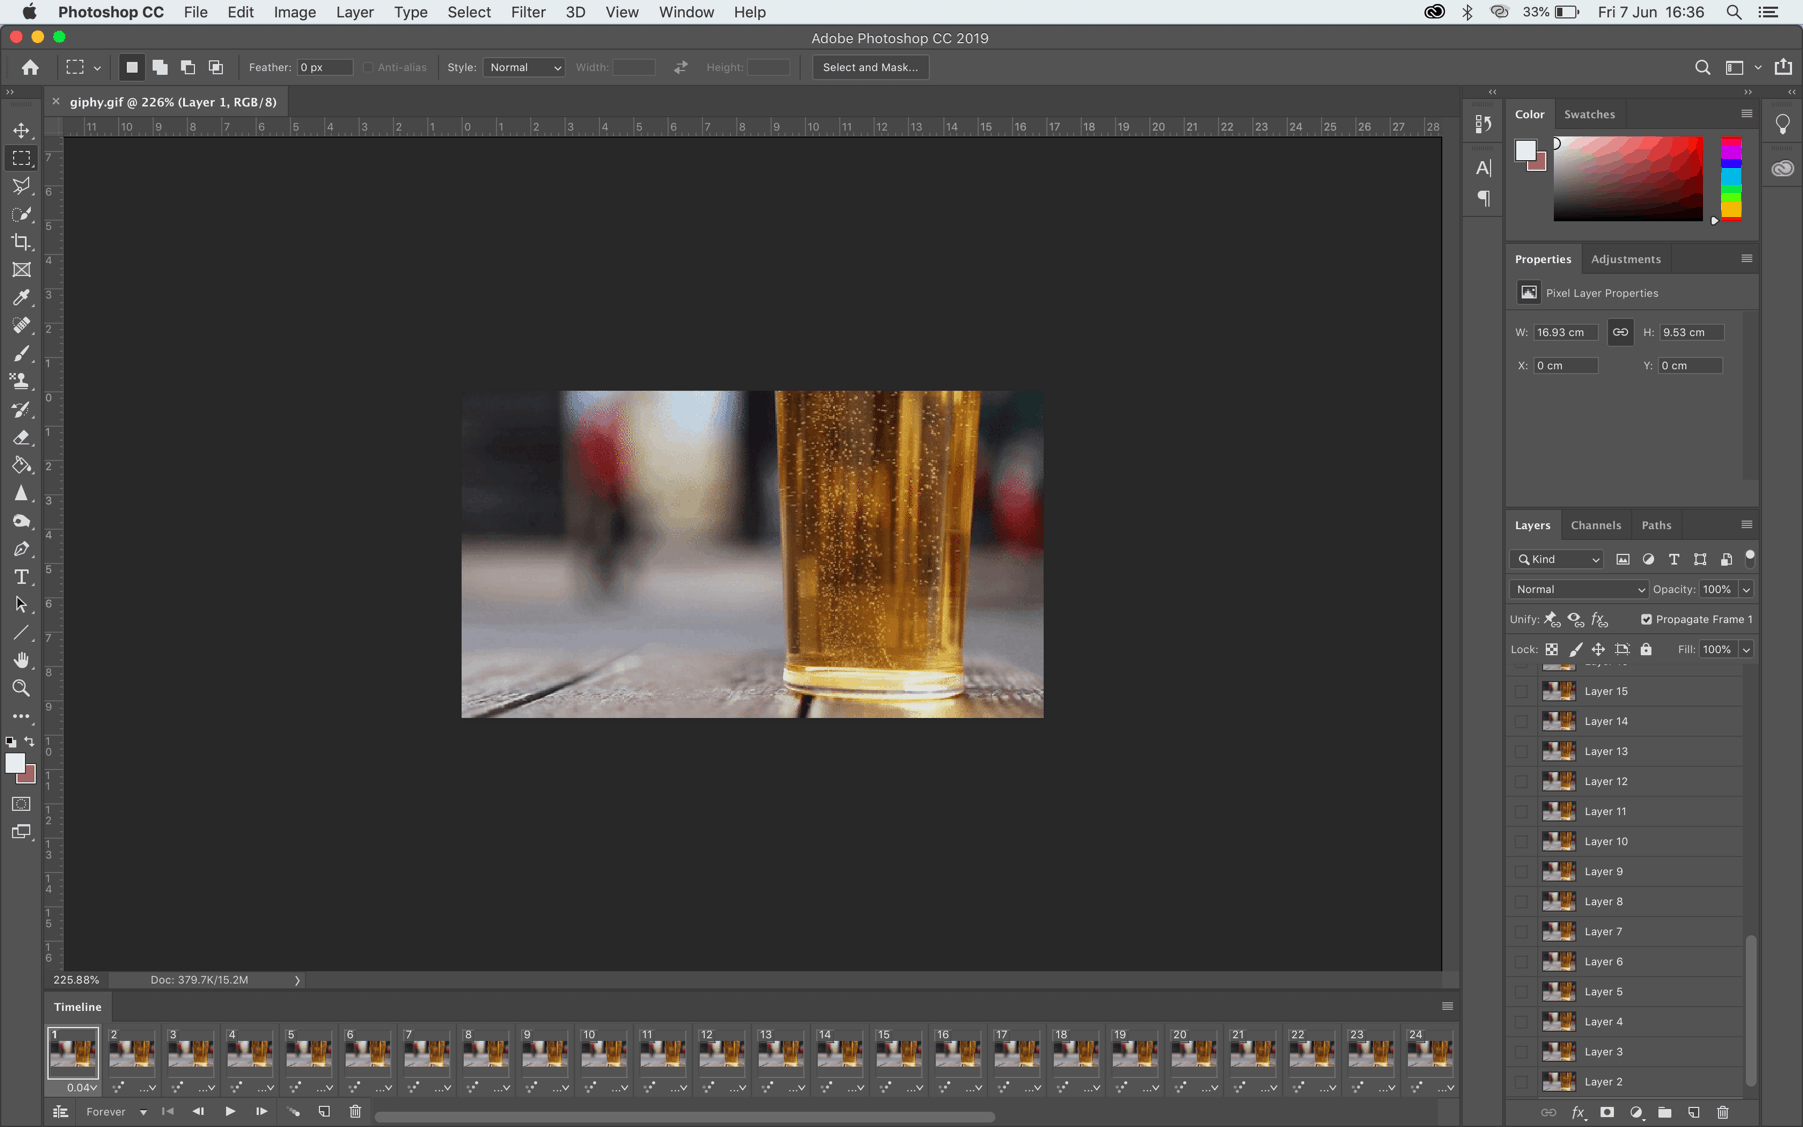 GIF timeline in Photoshop